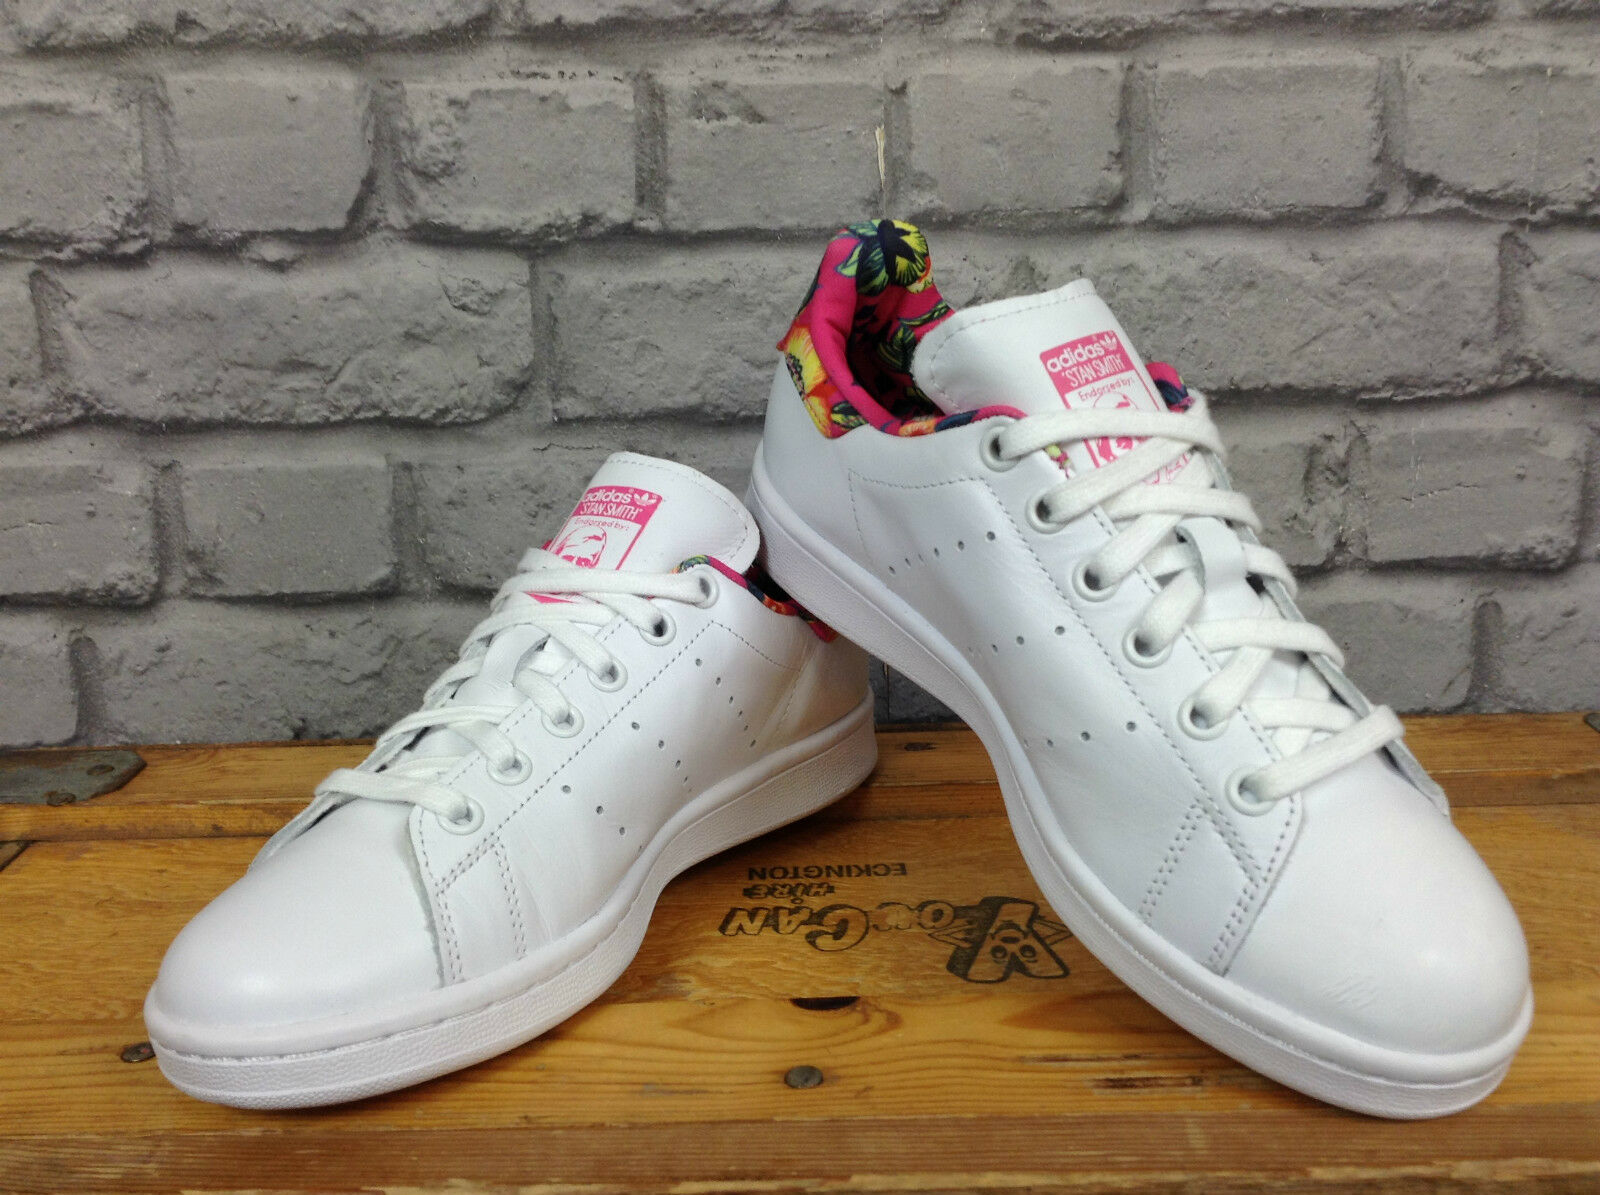 ADIDAS LADIES UK 5 STAN SMITH PINK TROPICAL WEISS LEATHER TRAINERS RARE